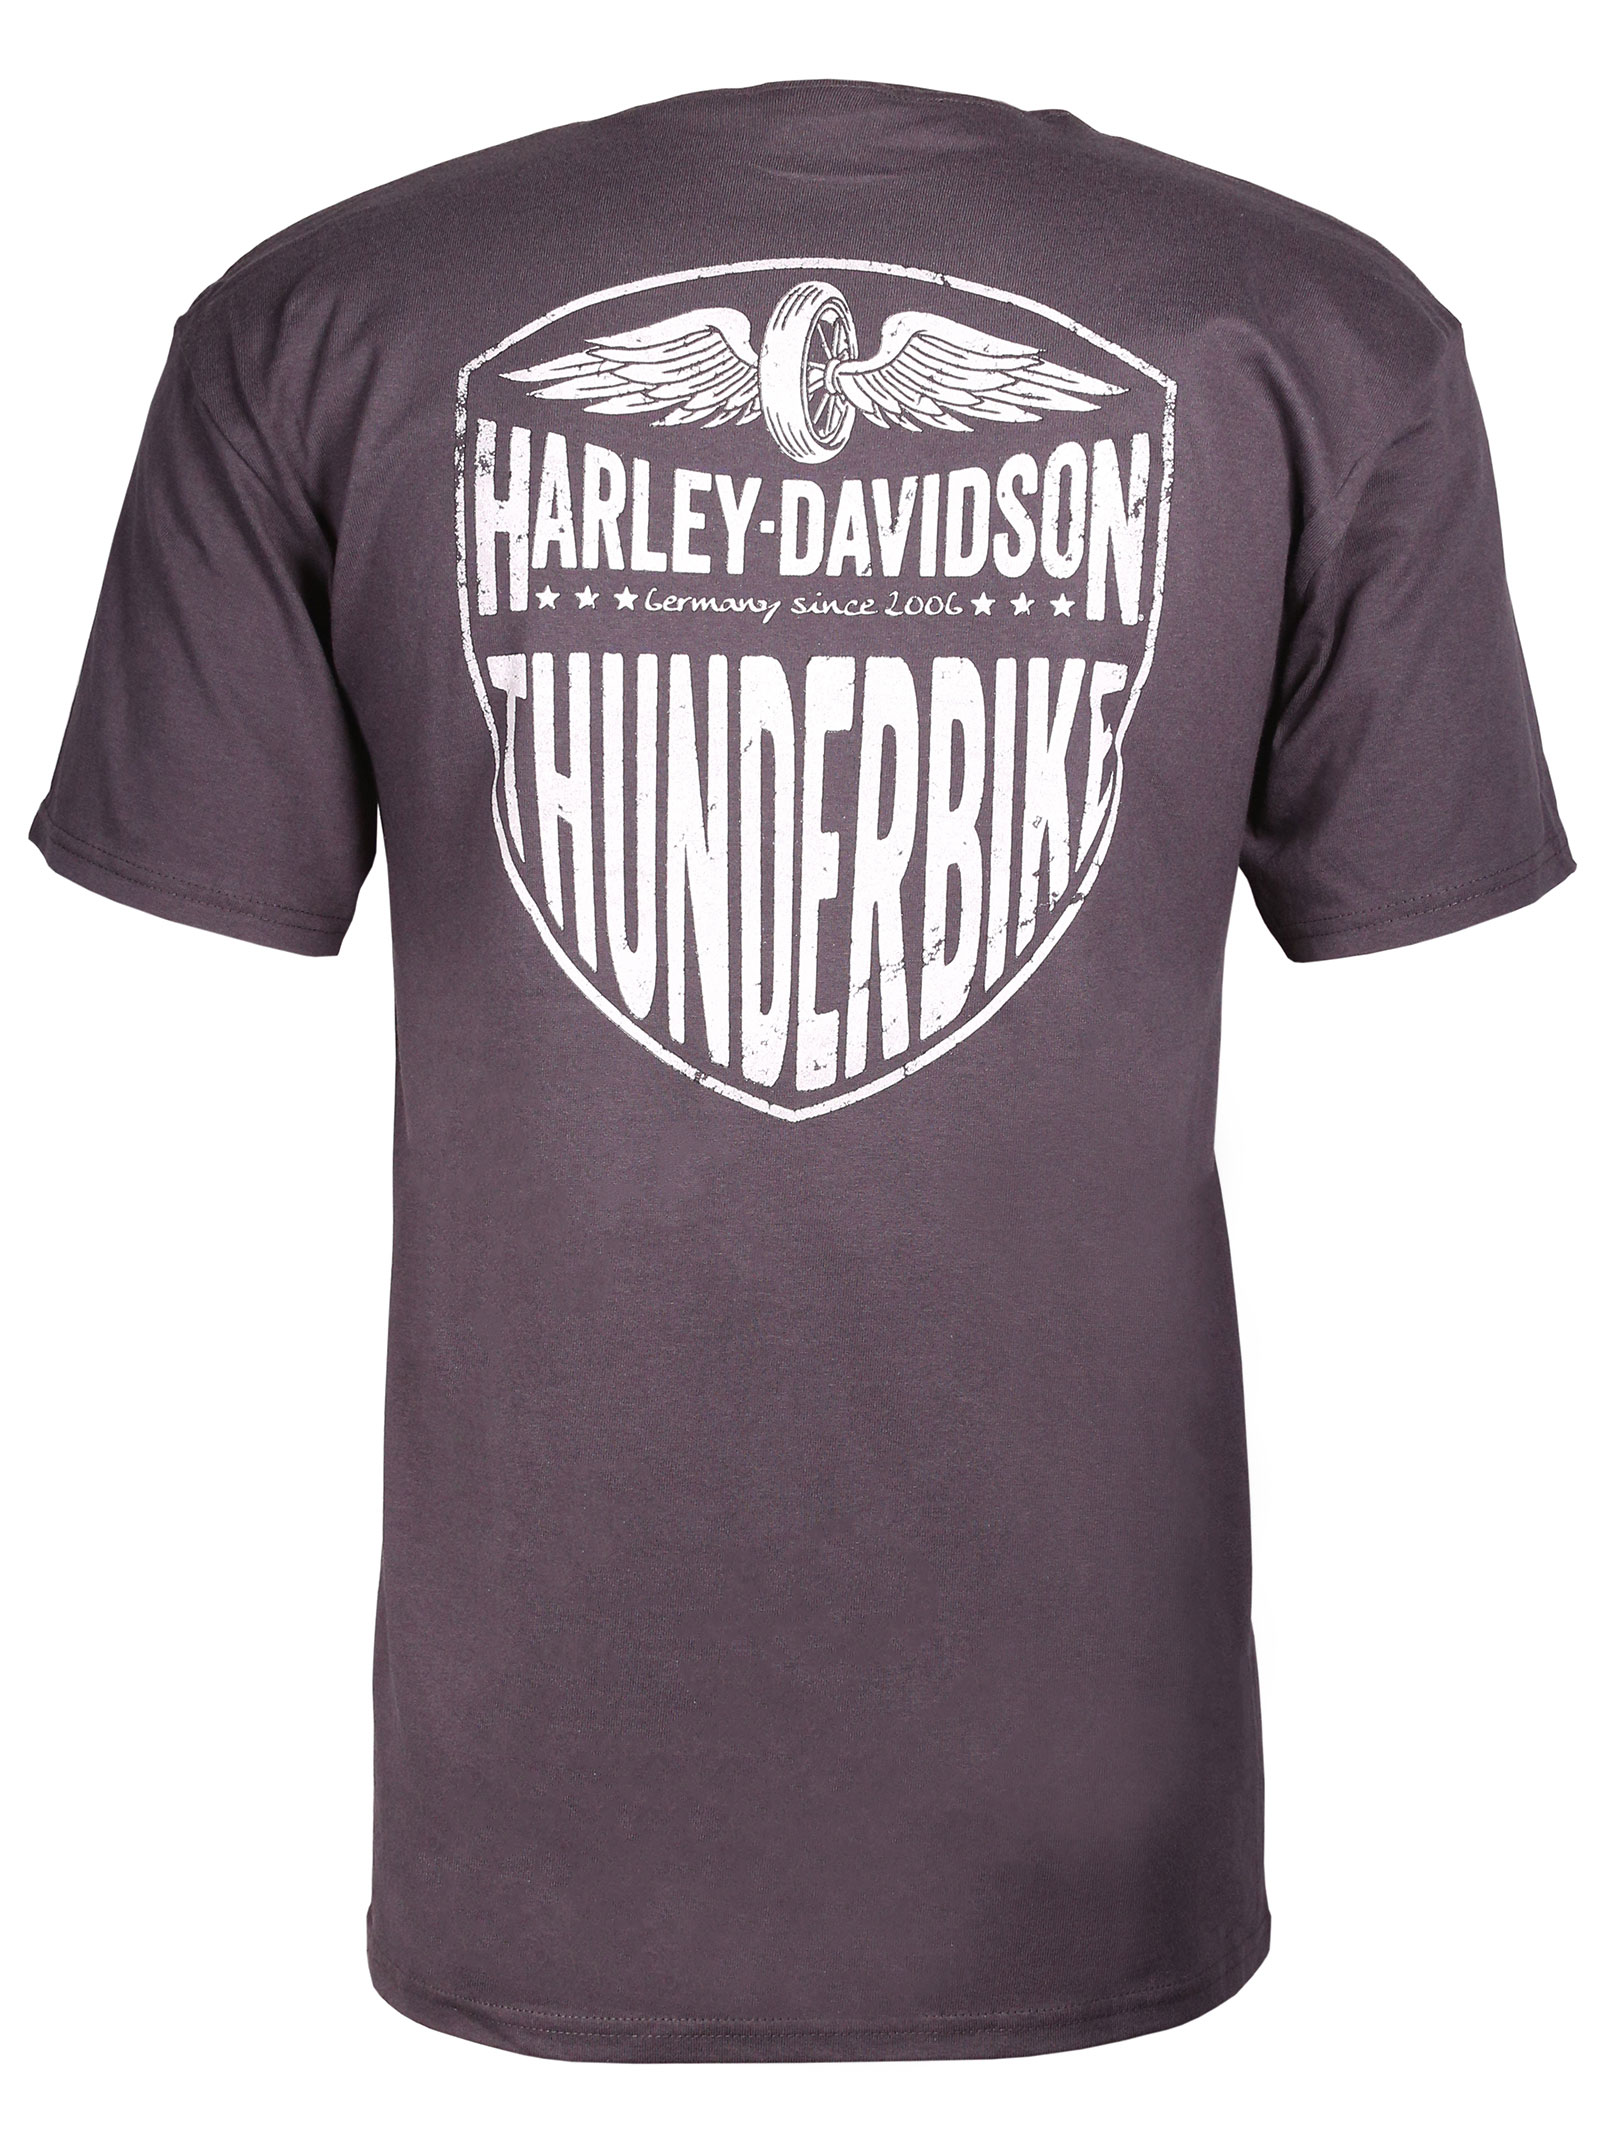 harley davidson t shirt hd overload at thunderbike shop. Black Bedroom Furniture Sets. Home Design Ideas